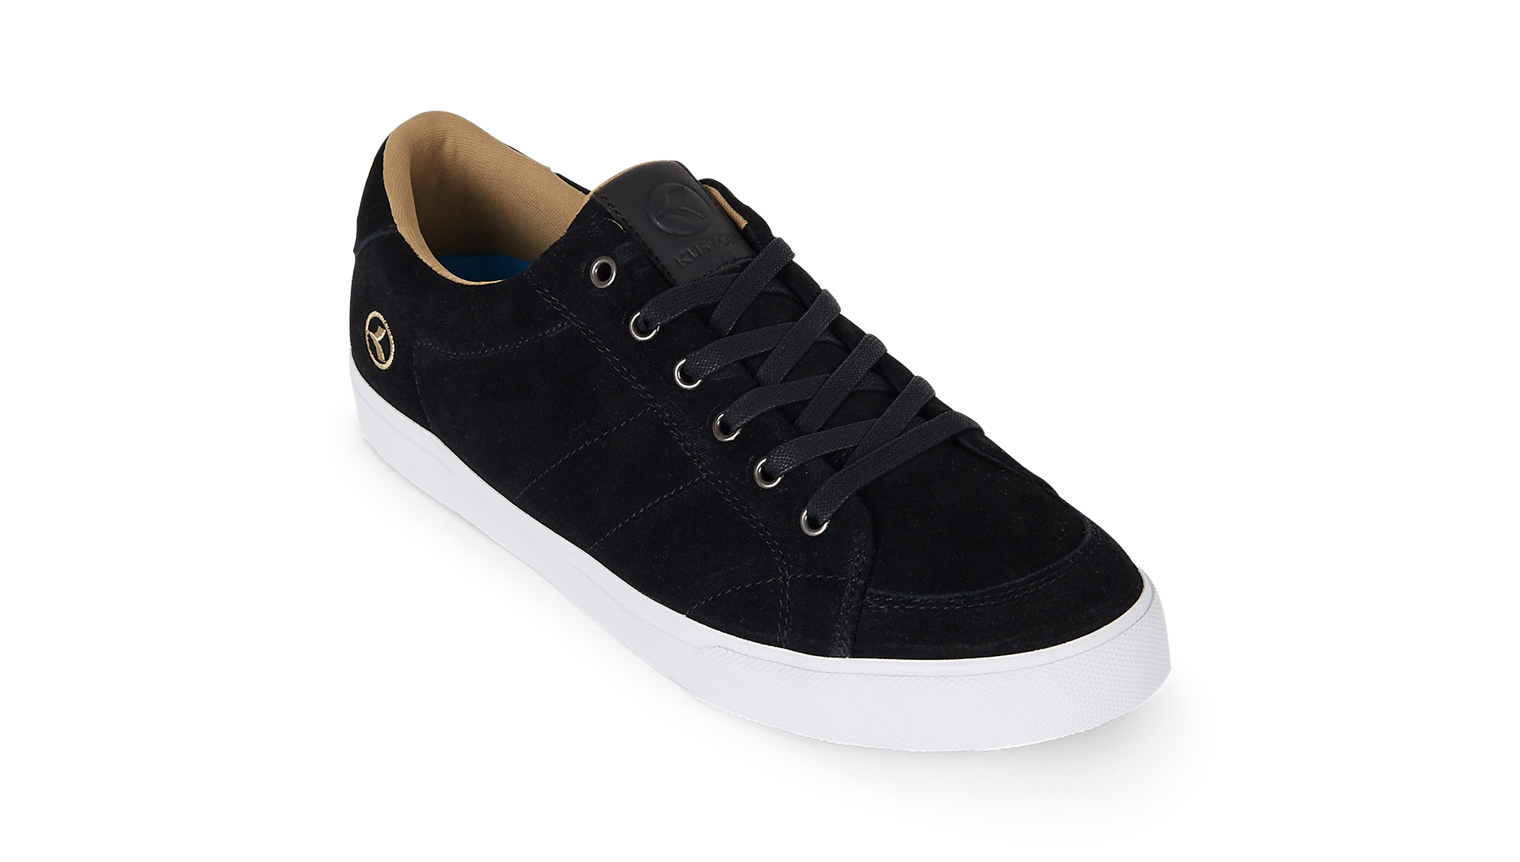 KUSTOM SHOES KRAMER SHOE / BLACK SUEDE